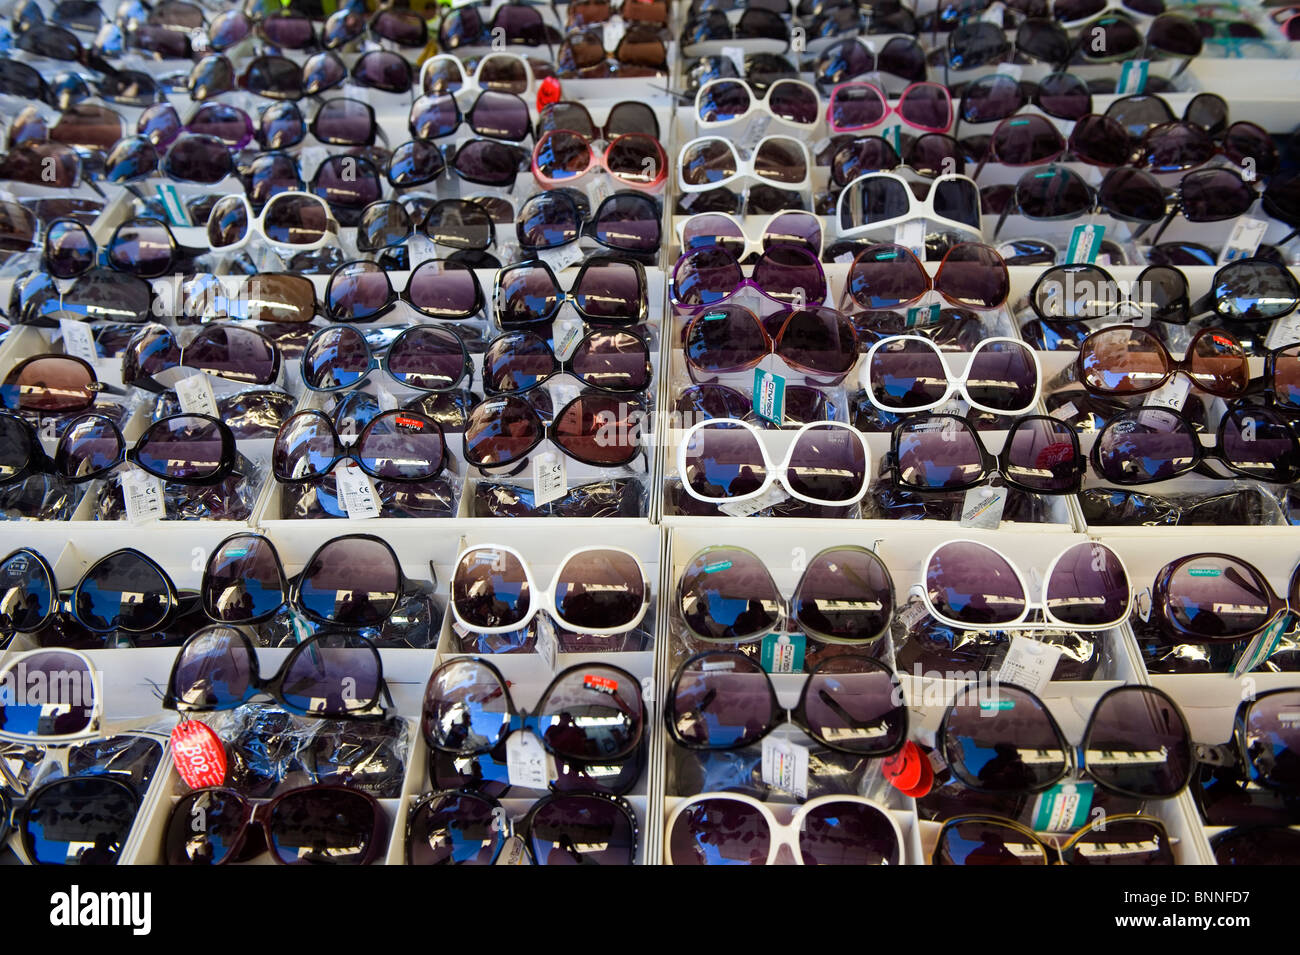 Italy. Tuscany. Colle di val d'Elsa. The weekly market. - Stock Image